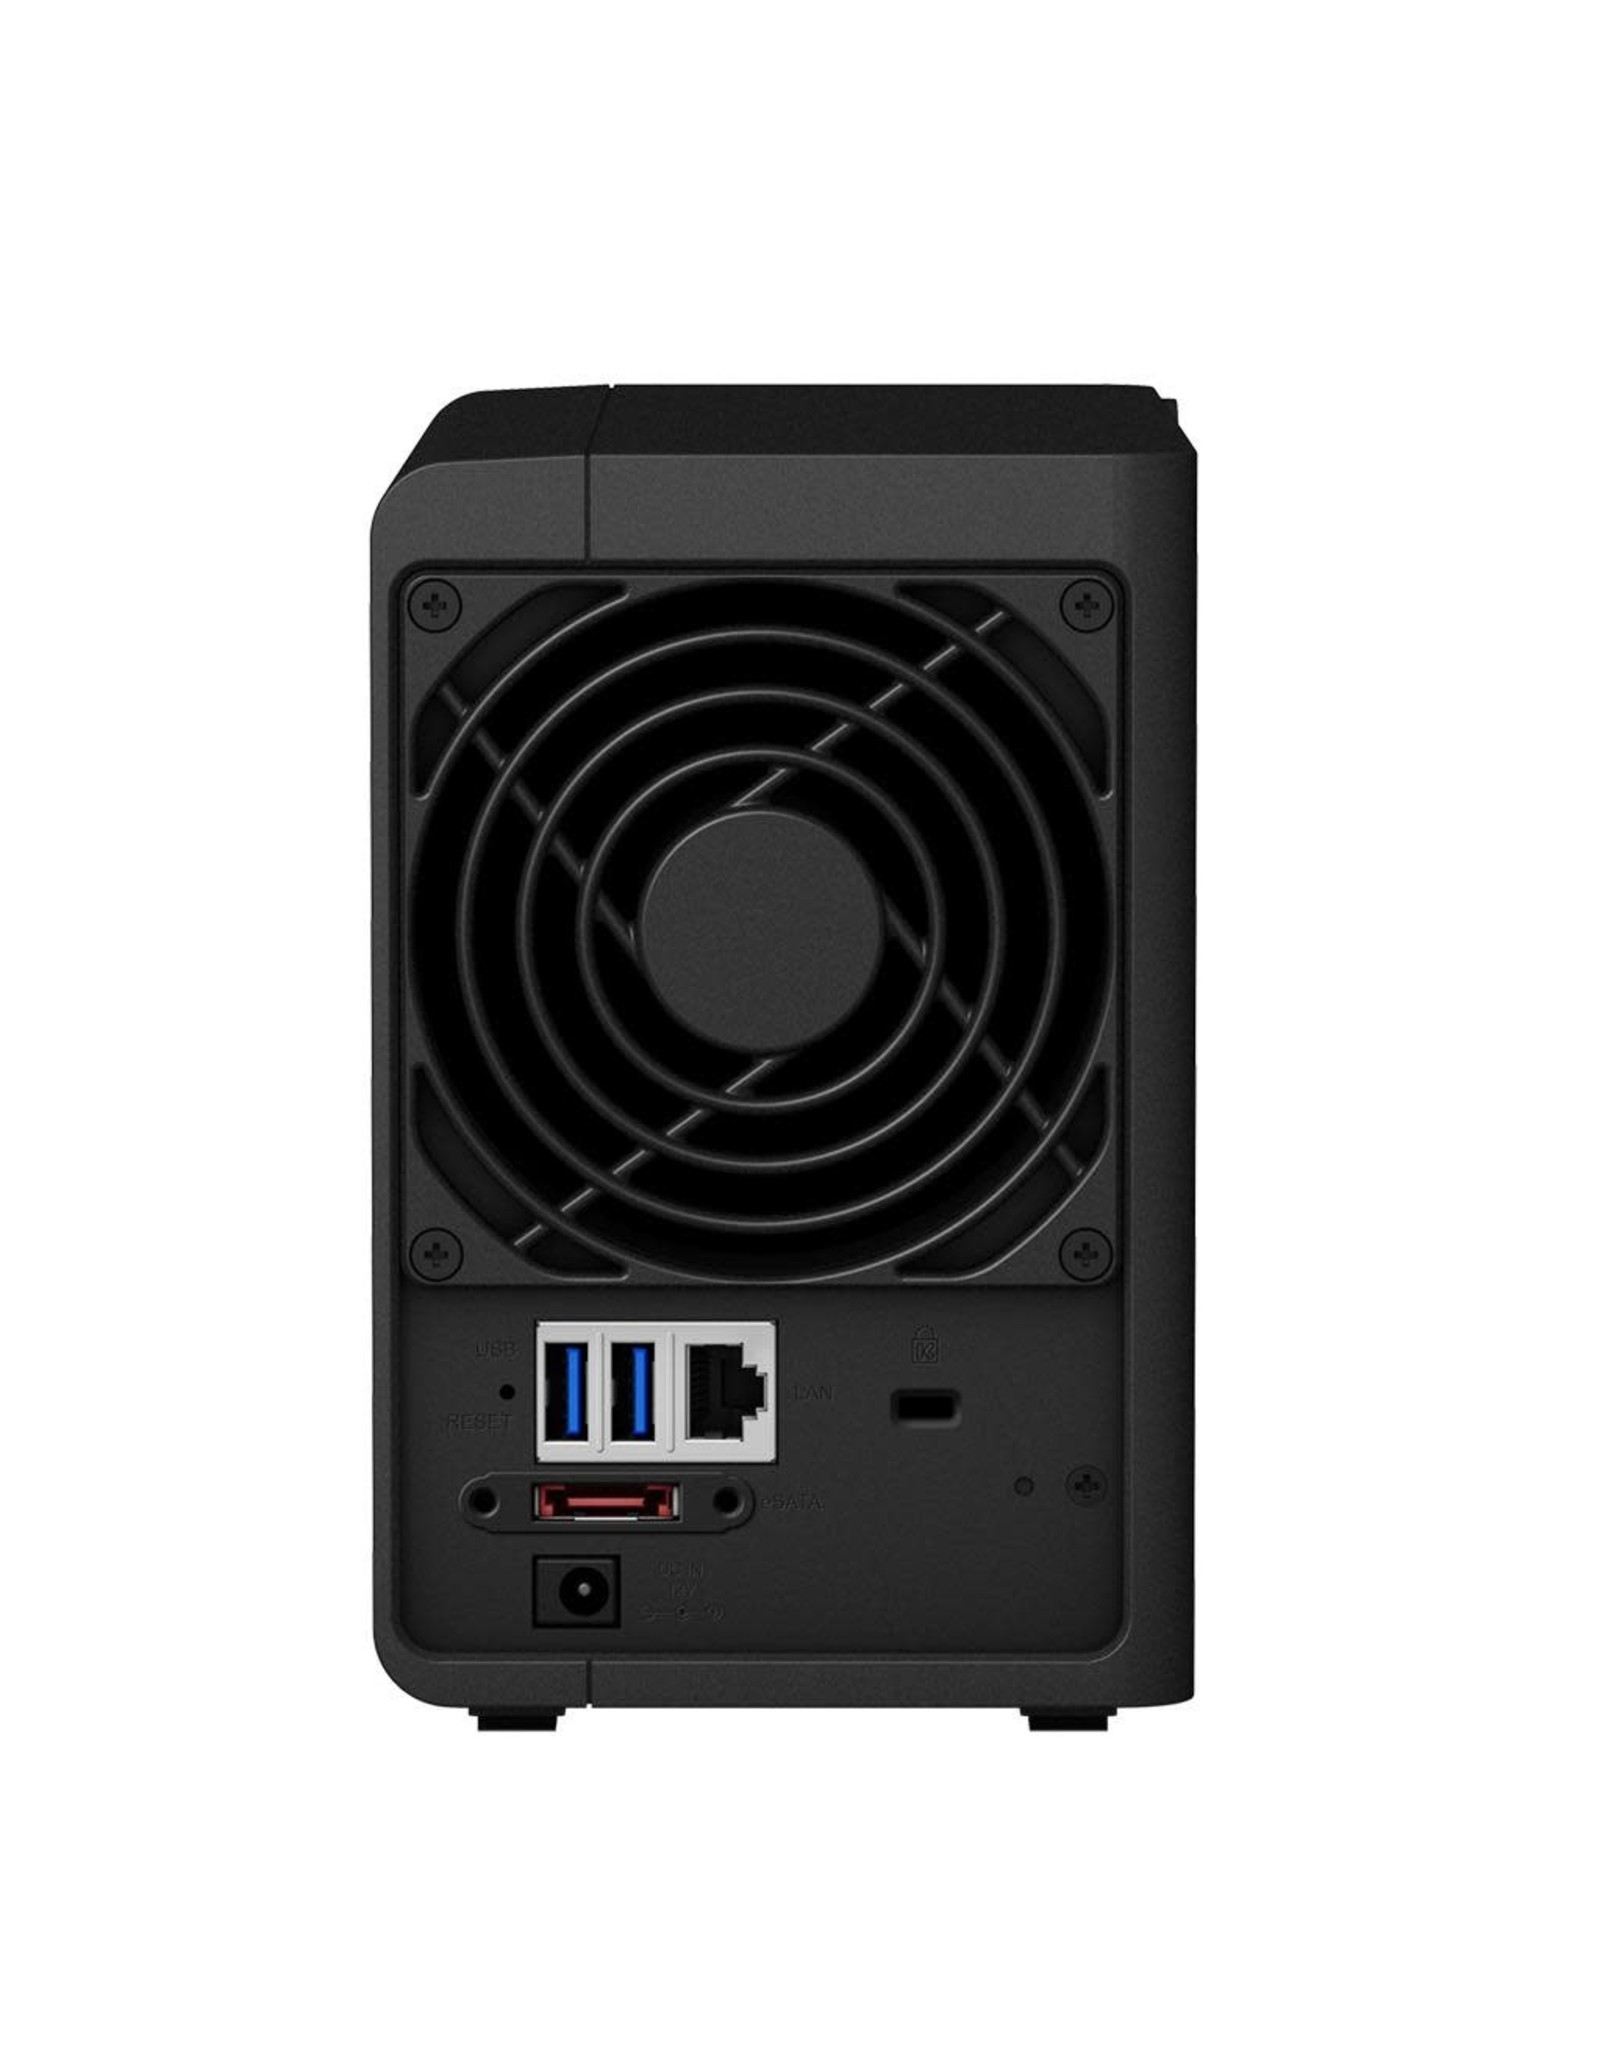 Synology Synology DS218+ 24TB 2 Bay Ultra Hi Performance NAS Server Dualcore - Seagate Ironwolf HDD 12TB x 2